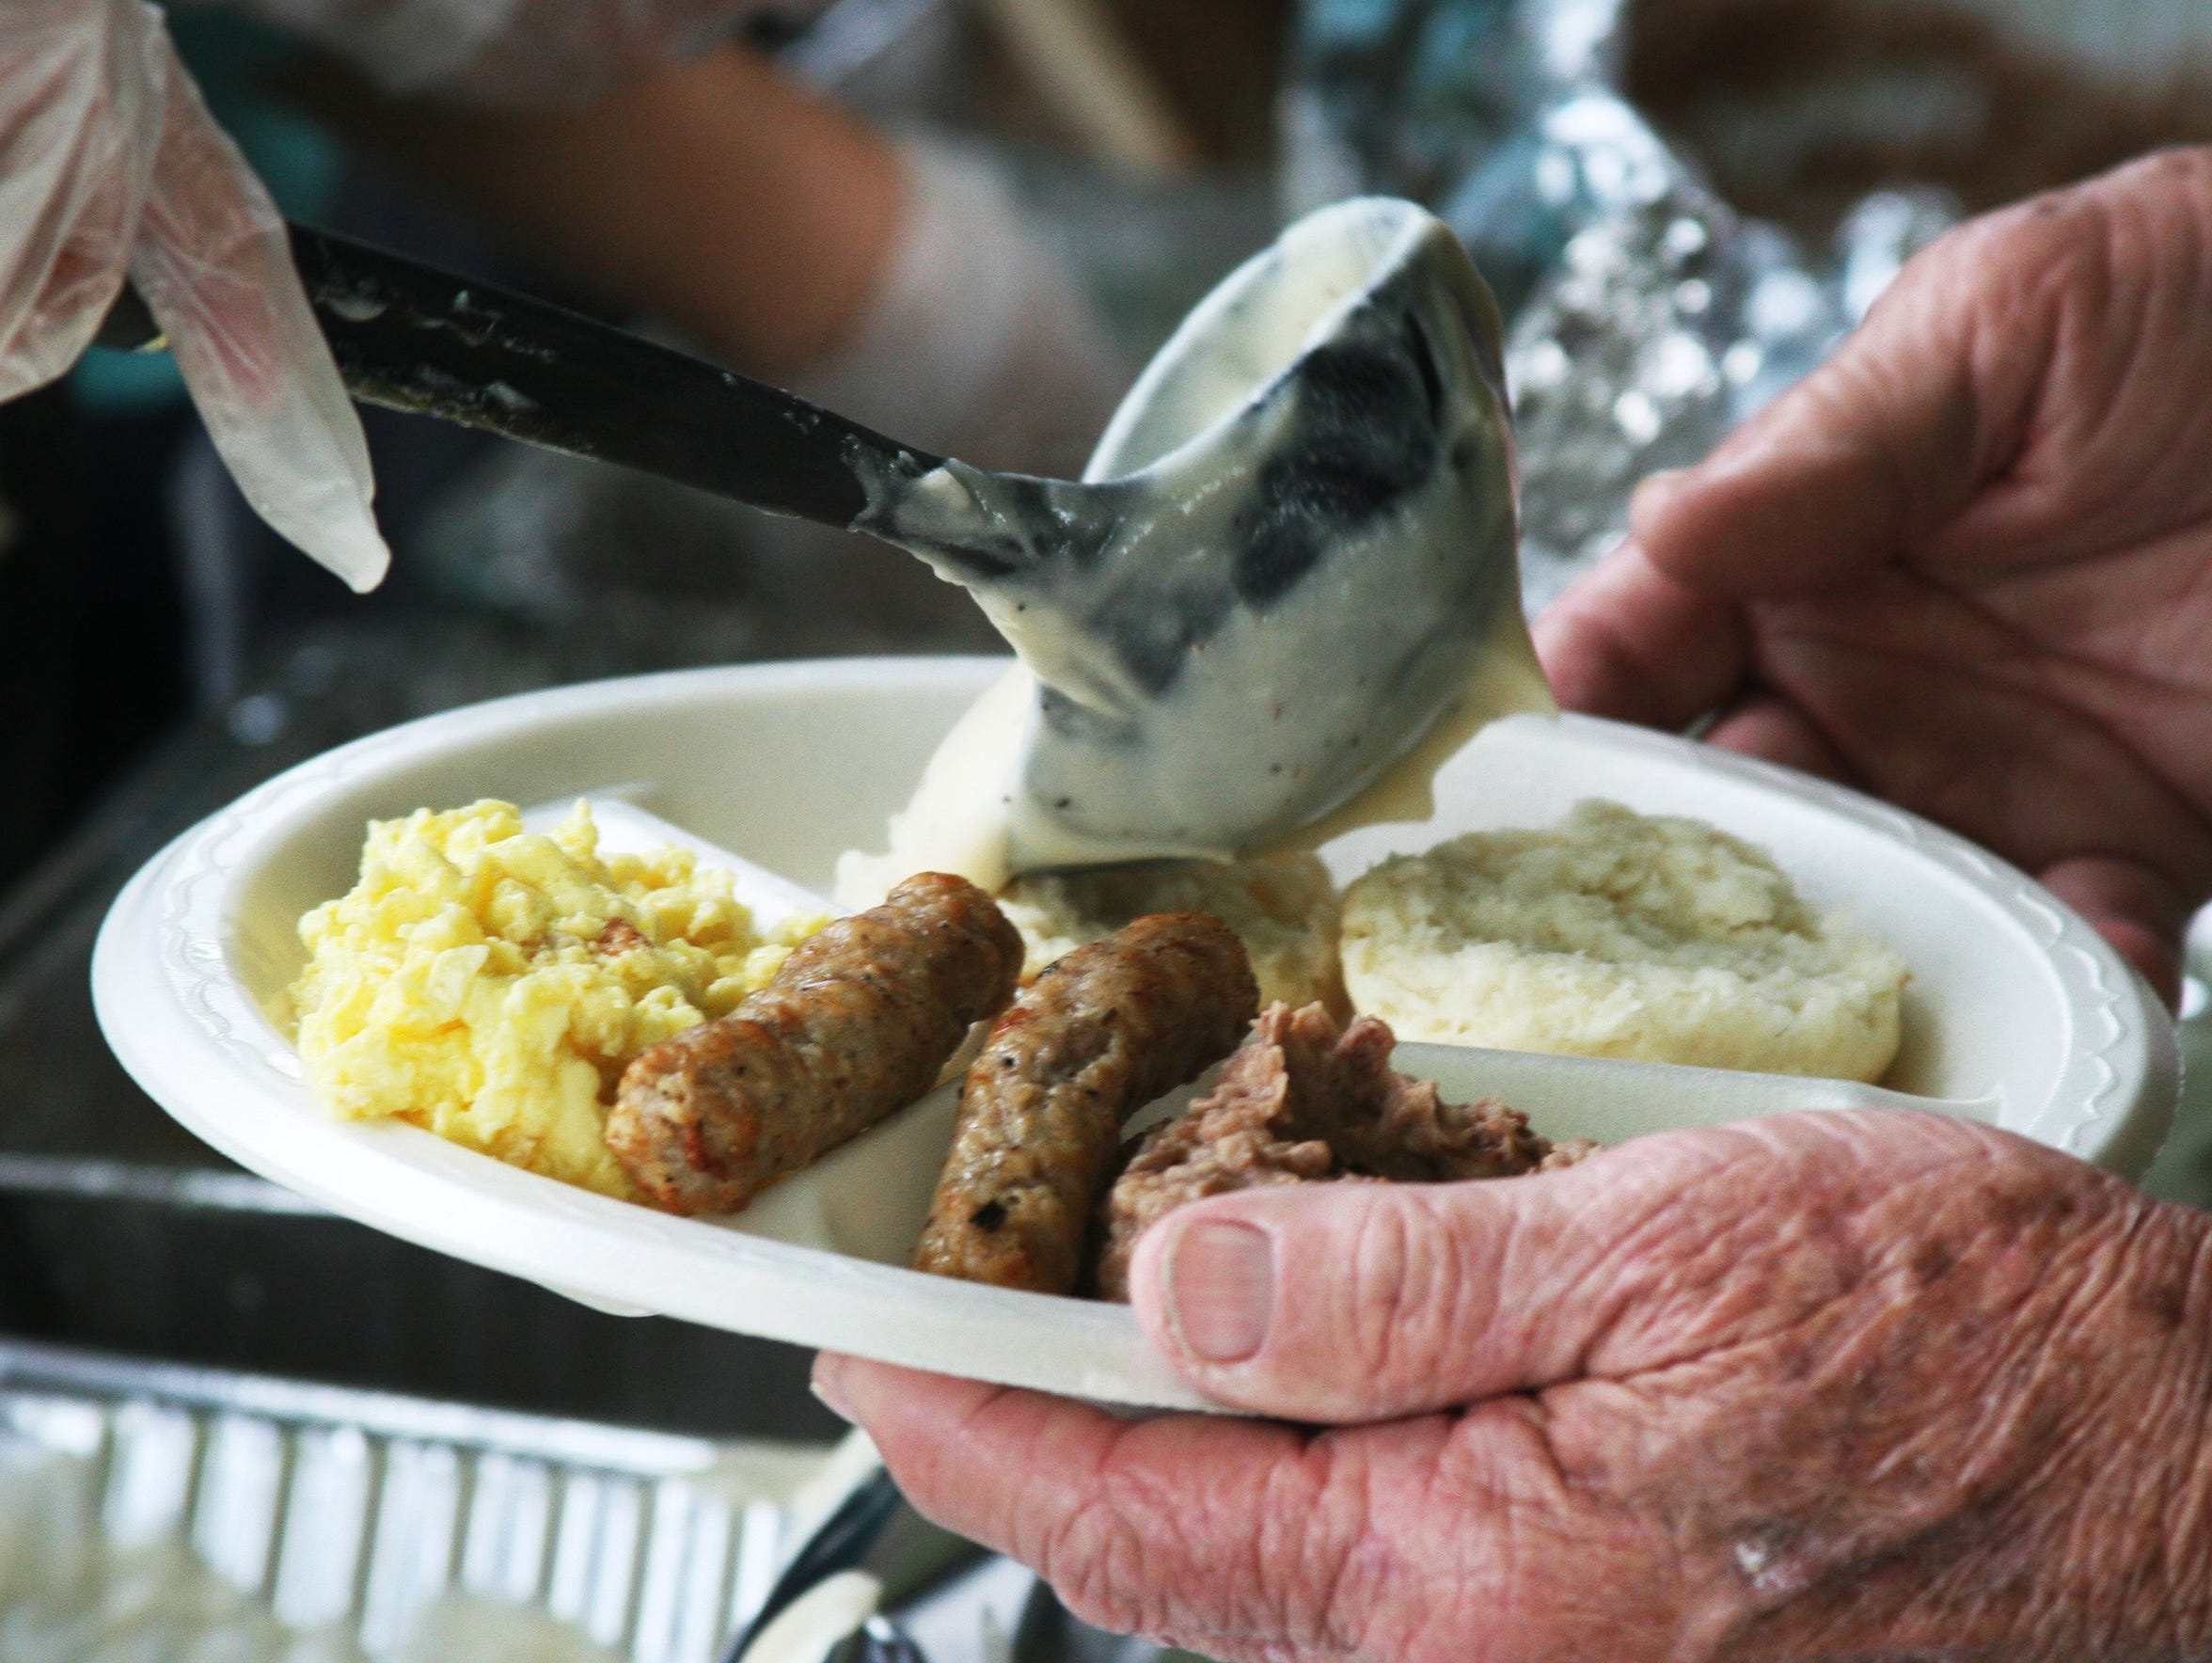 A volunteer ladles gravy over the biscuits during the